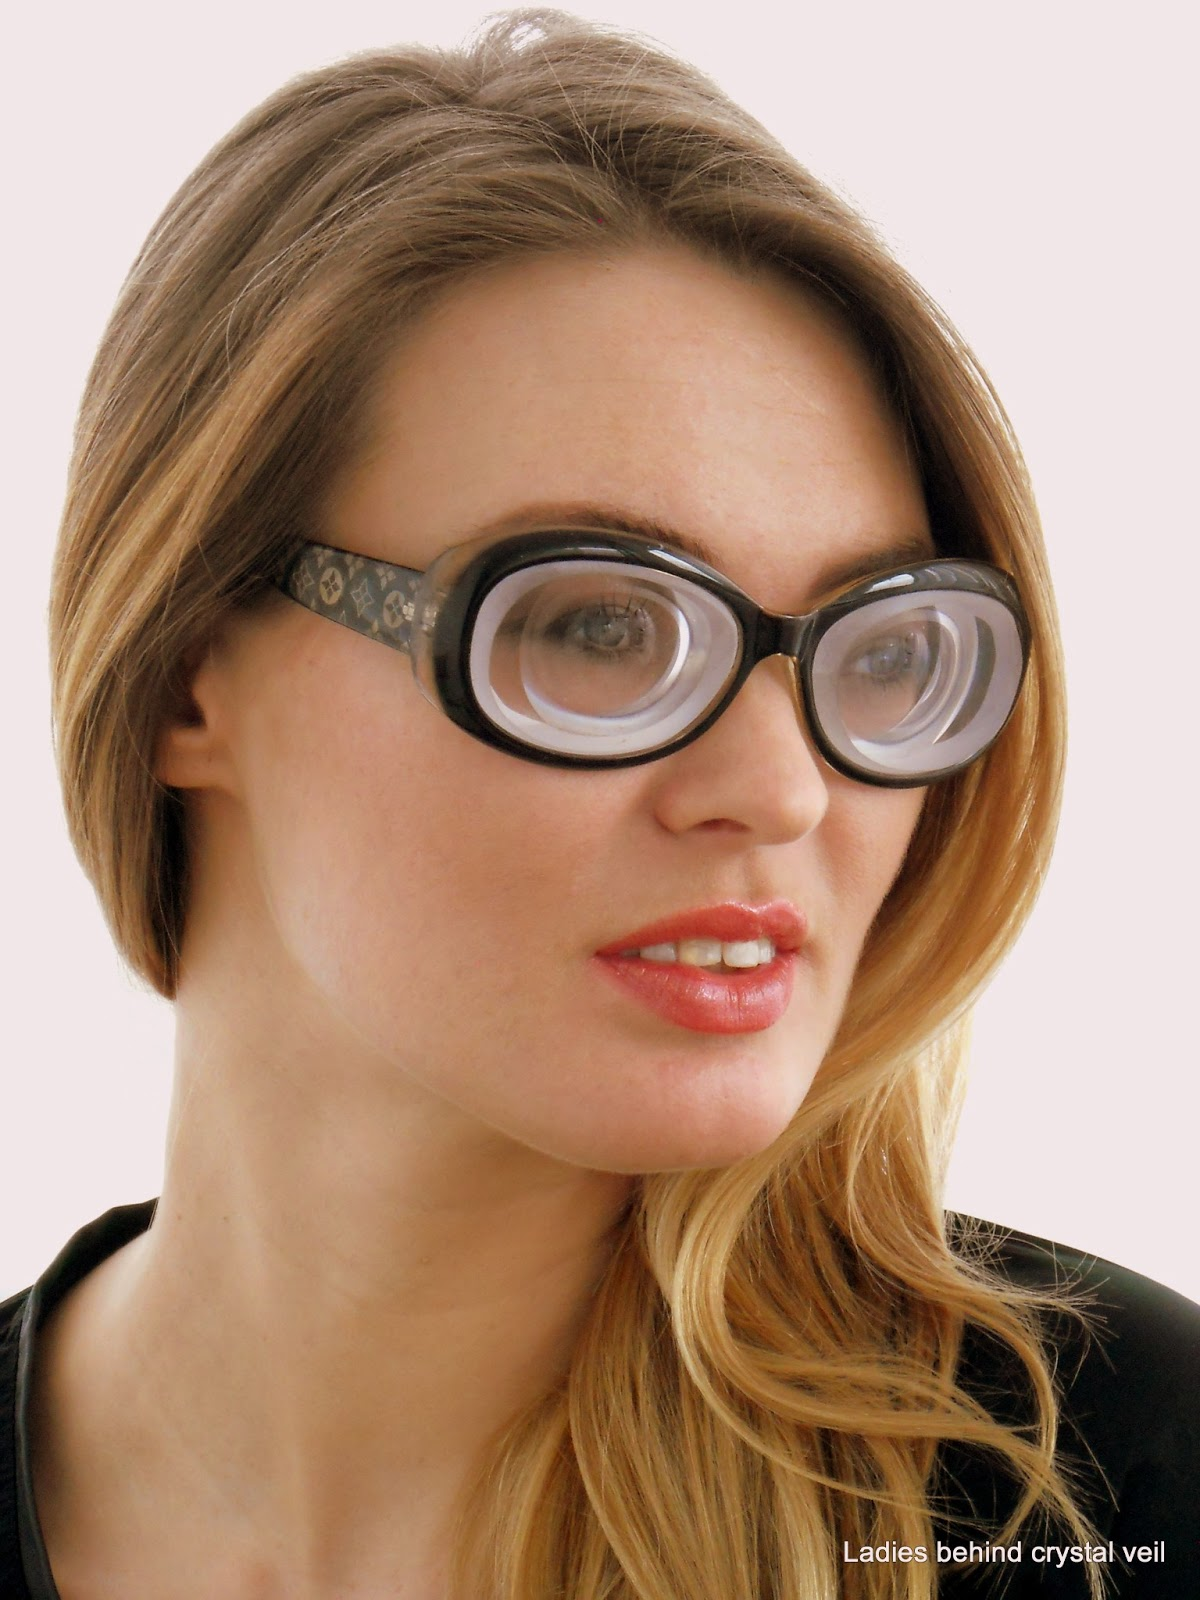 Conditions That Require Glasses